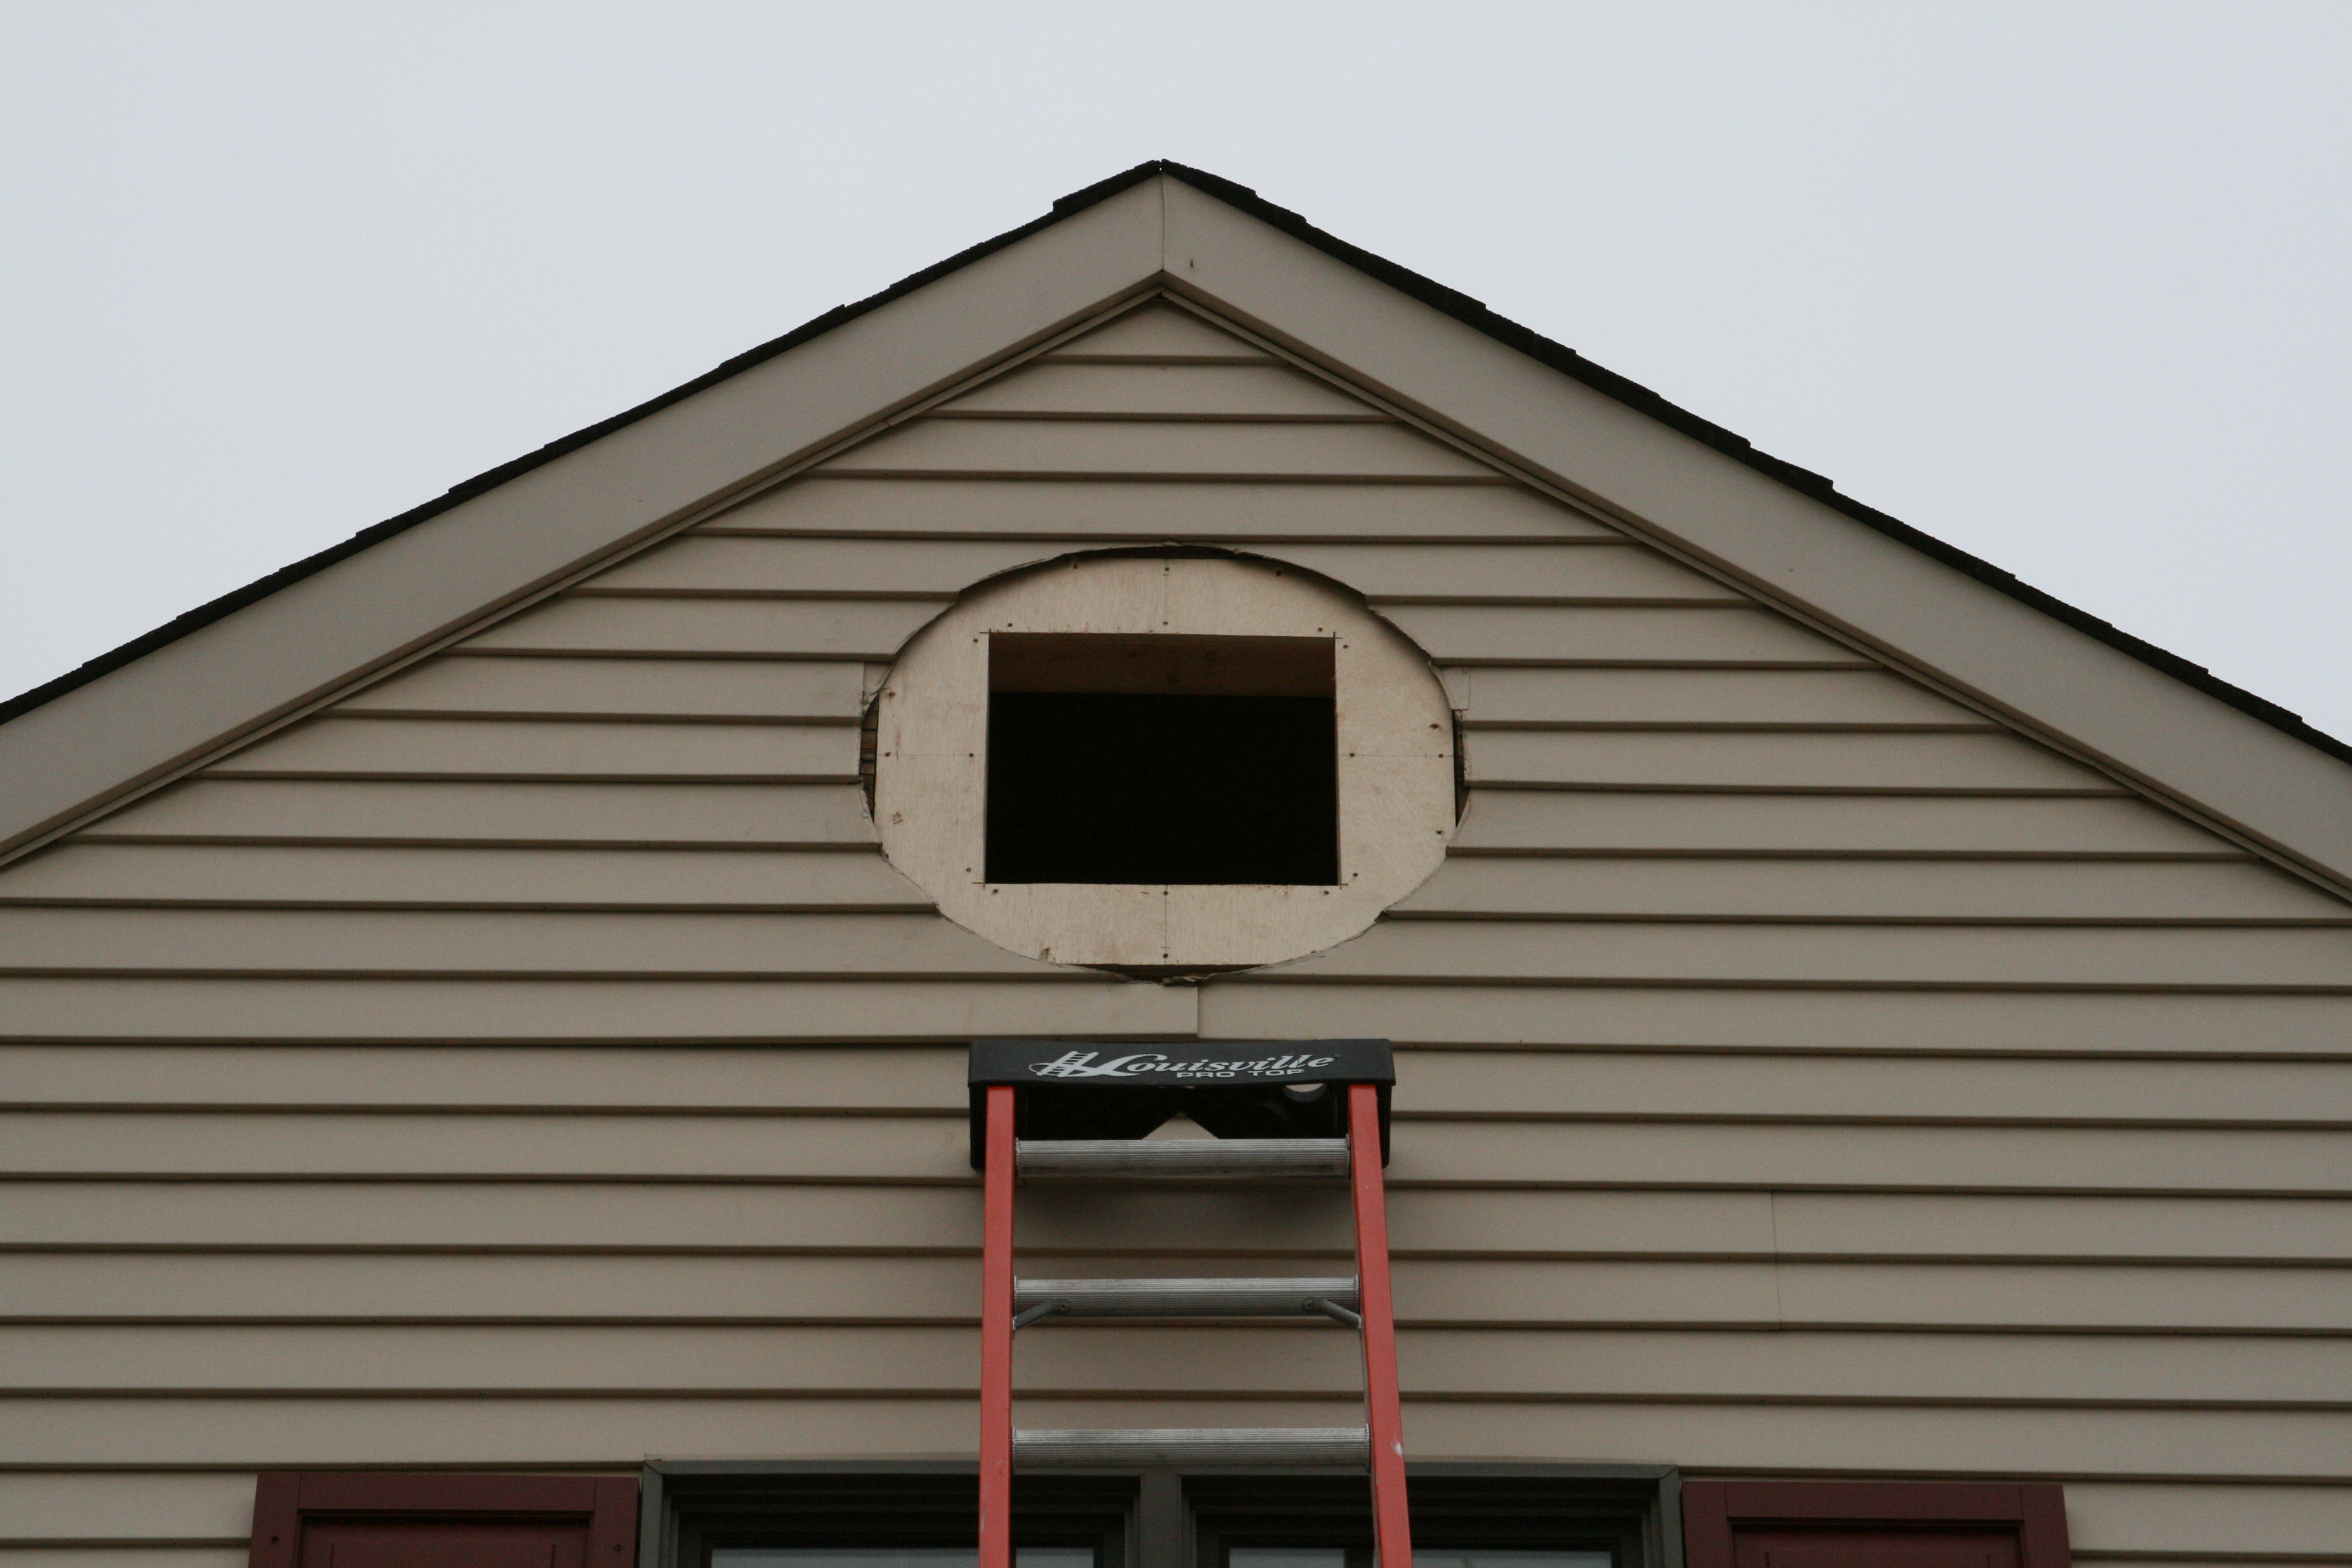 Gable Roof Installation : Gable vent installation west chester pa aaron